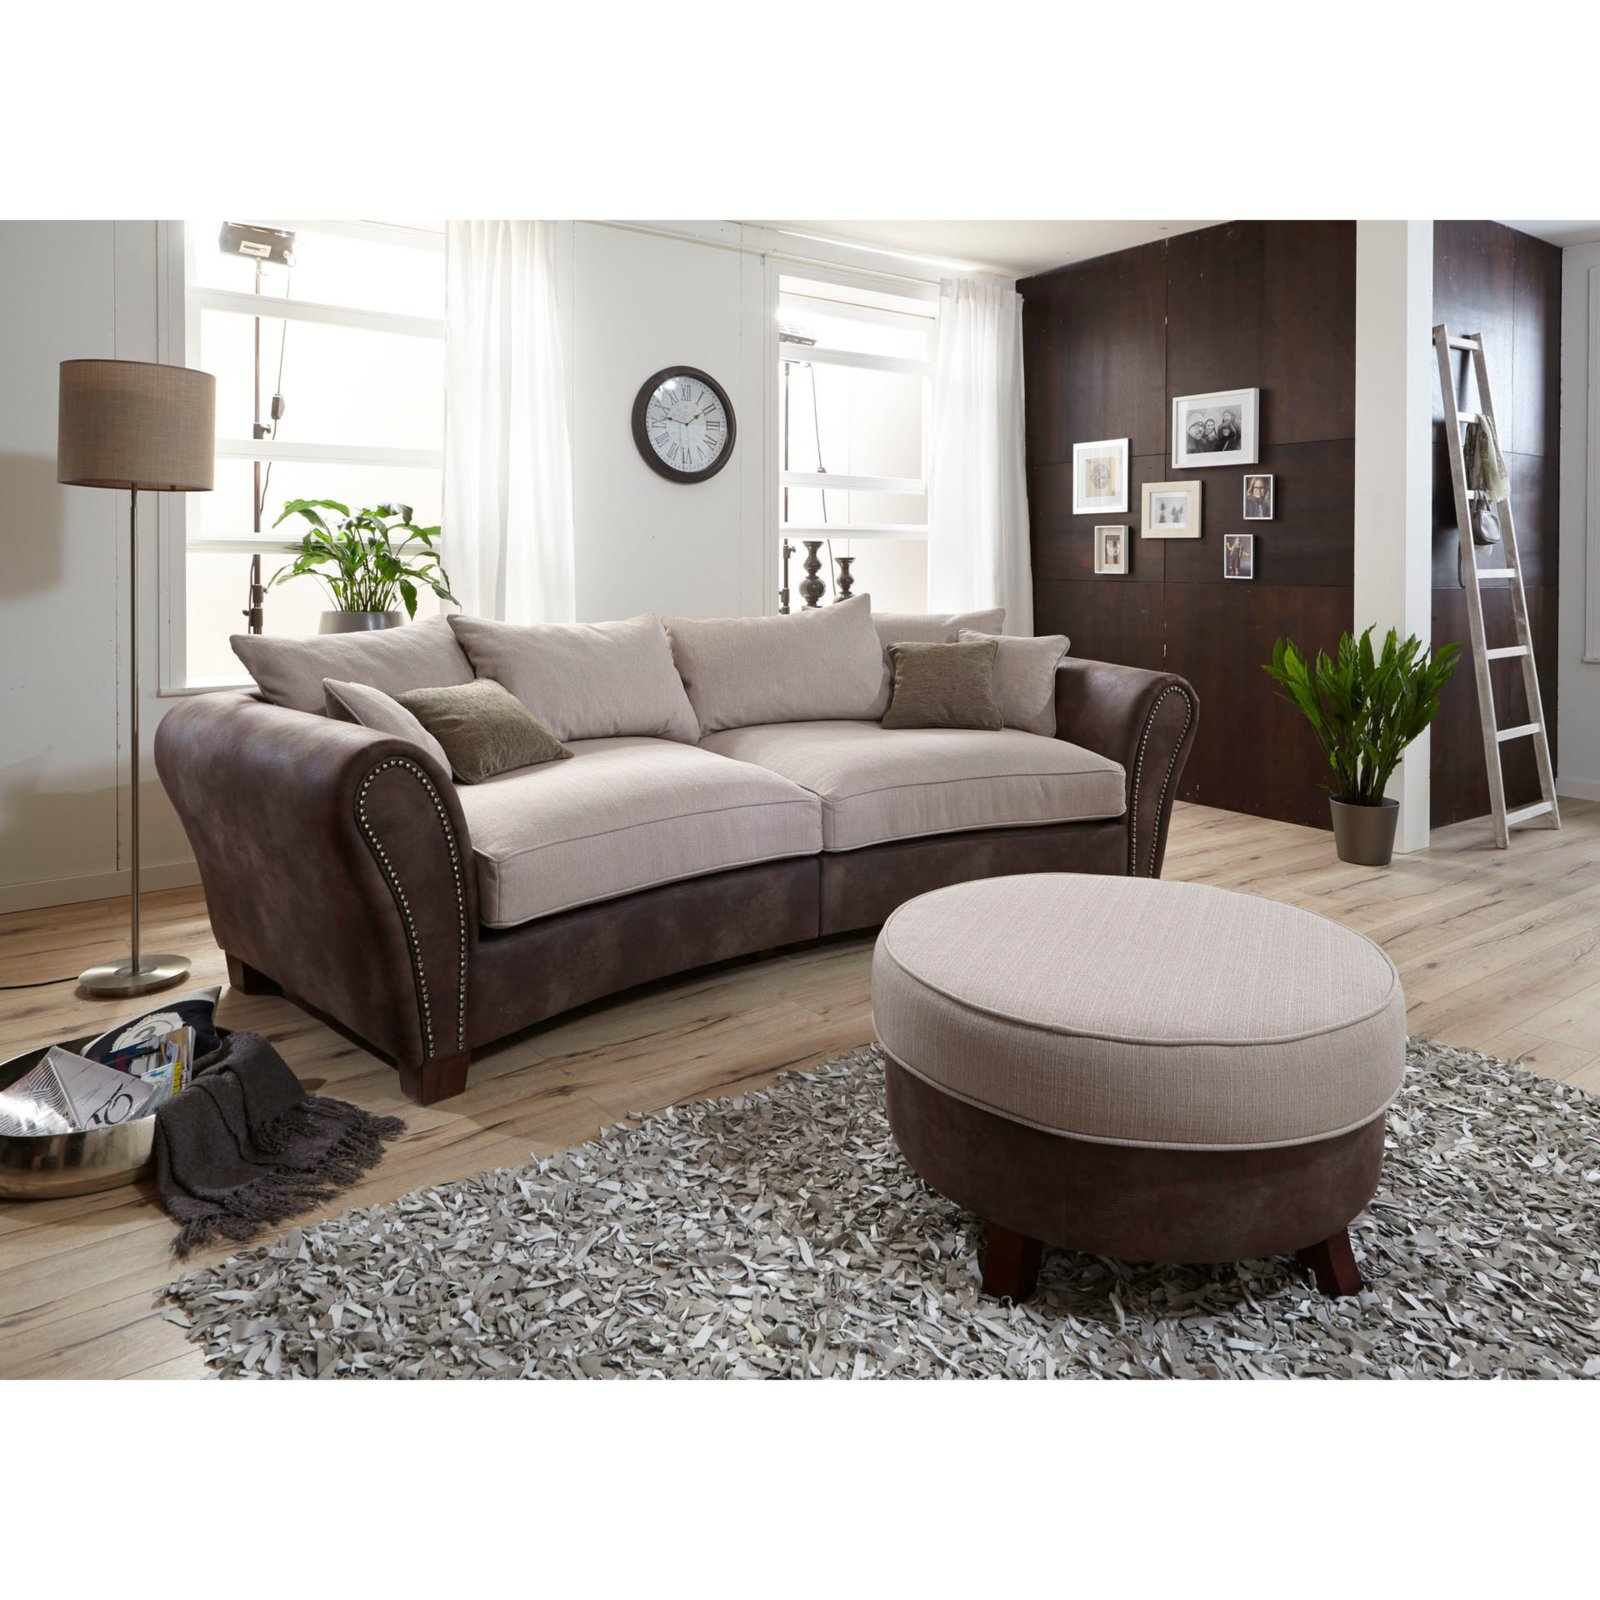 big sofa braun beige inklusive kissen ebay. Black Bedroom Furniture Sets. Home Design Ideas